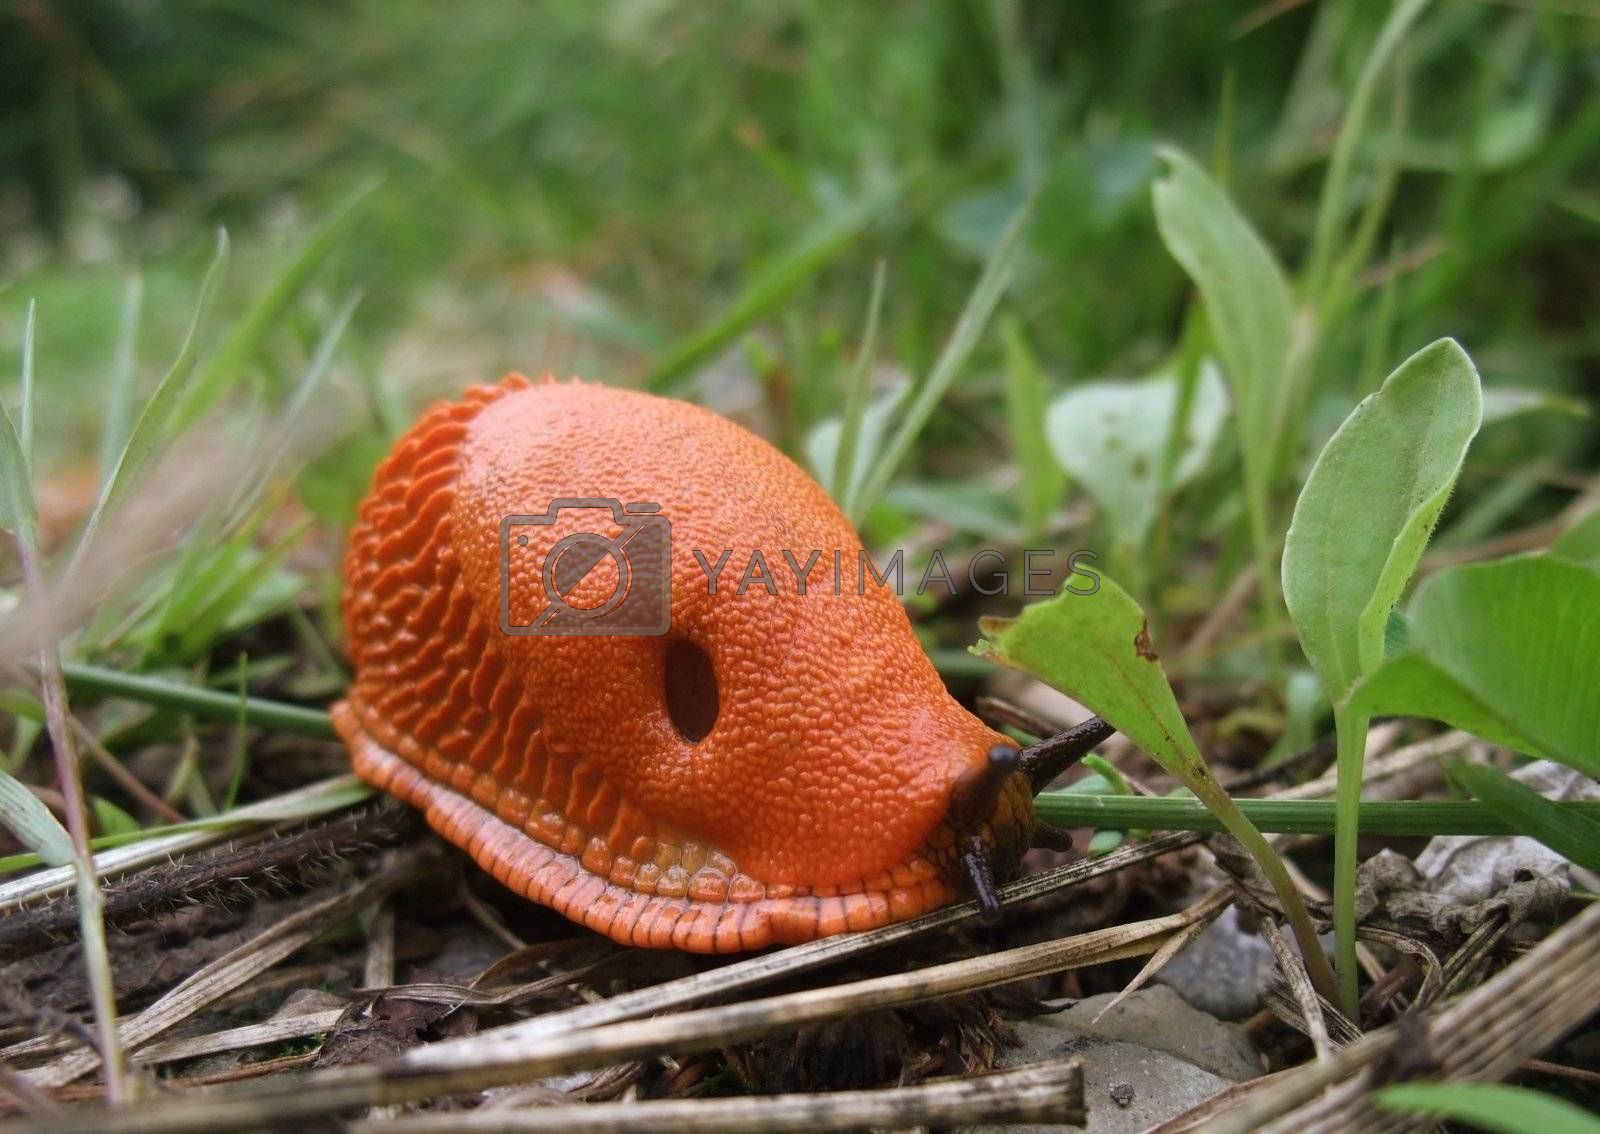 surface shot of a red slug while creeping on the ground in green back